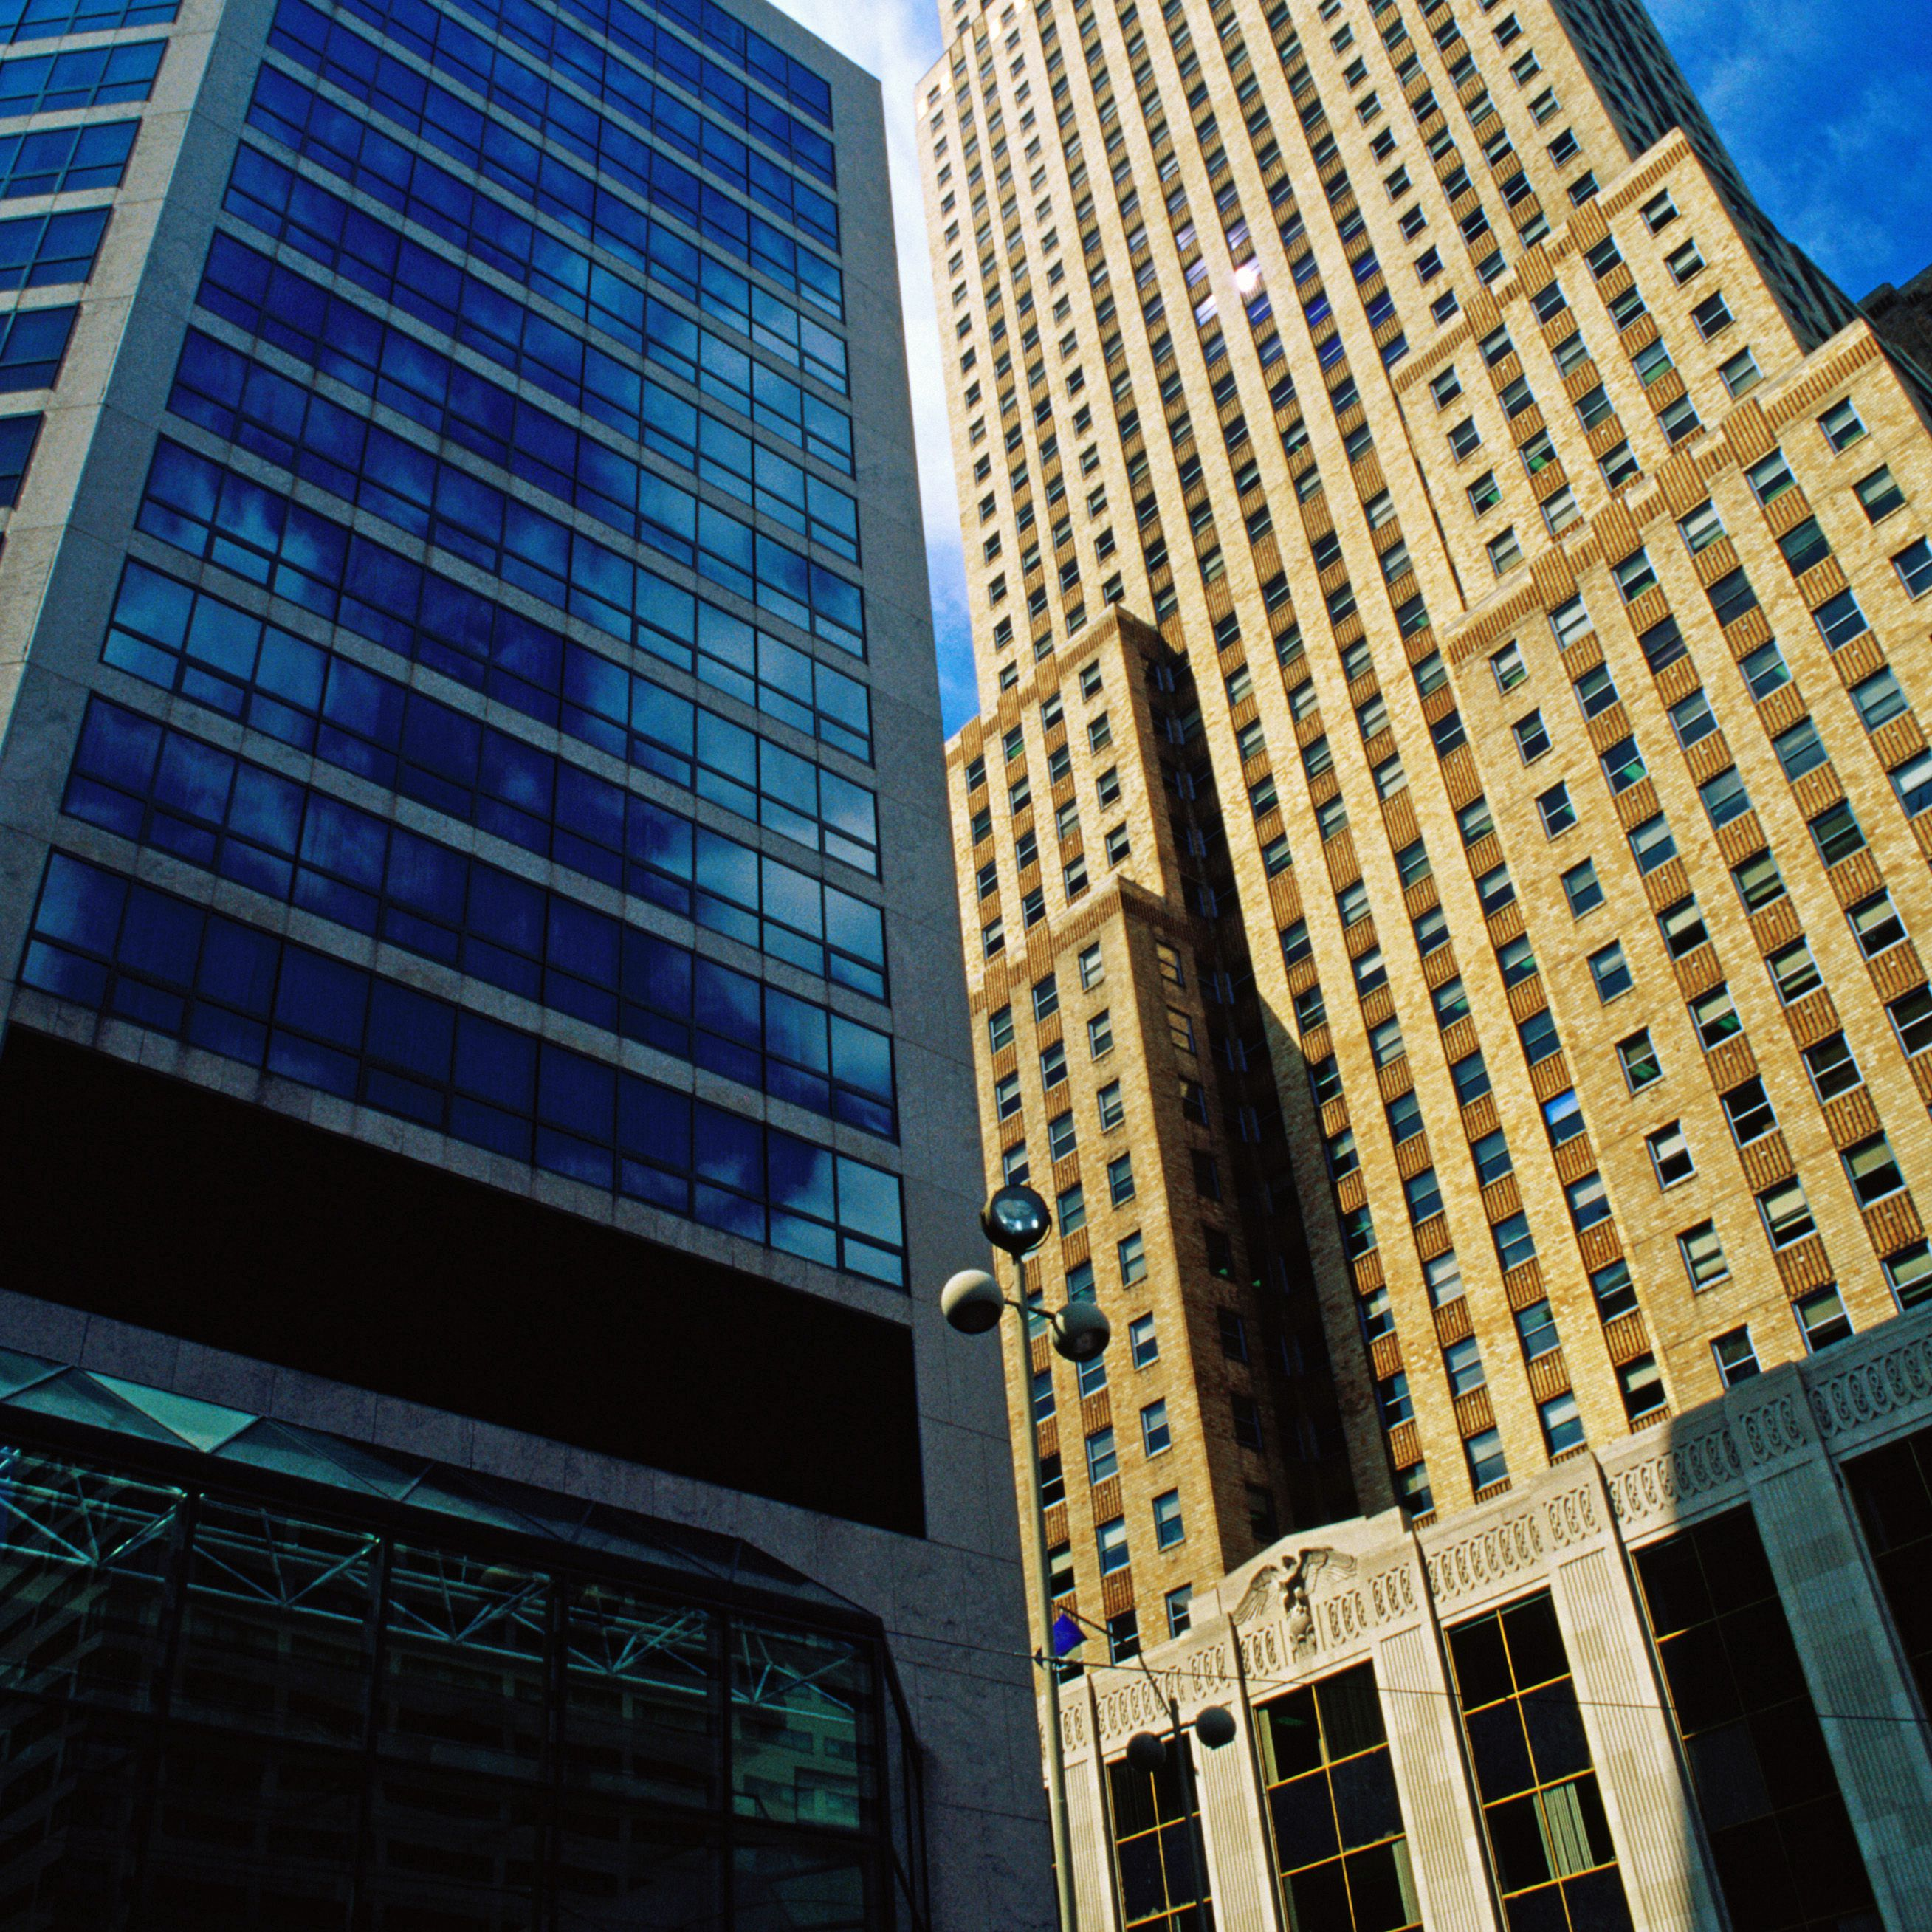 Carew Tower offers an excellent observation point that's more than 500 feet above downtown Cincinnati.